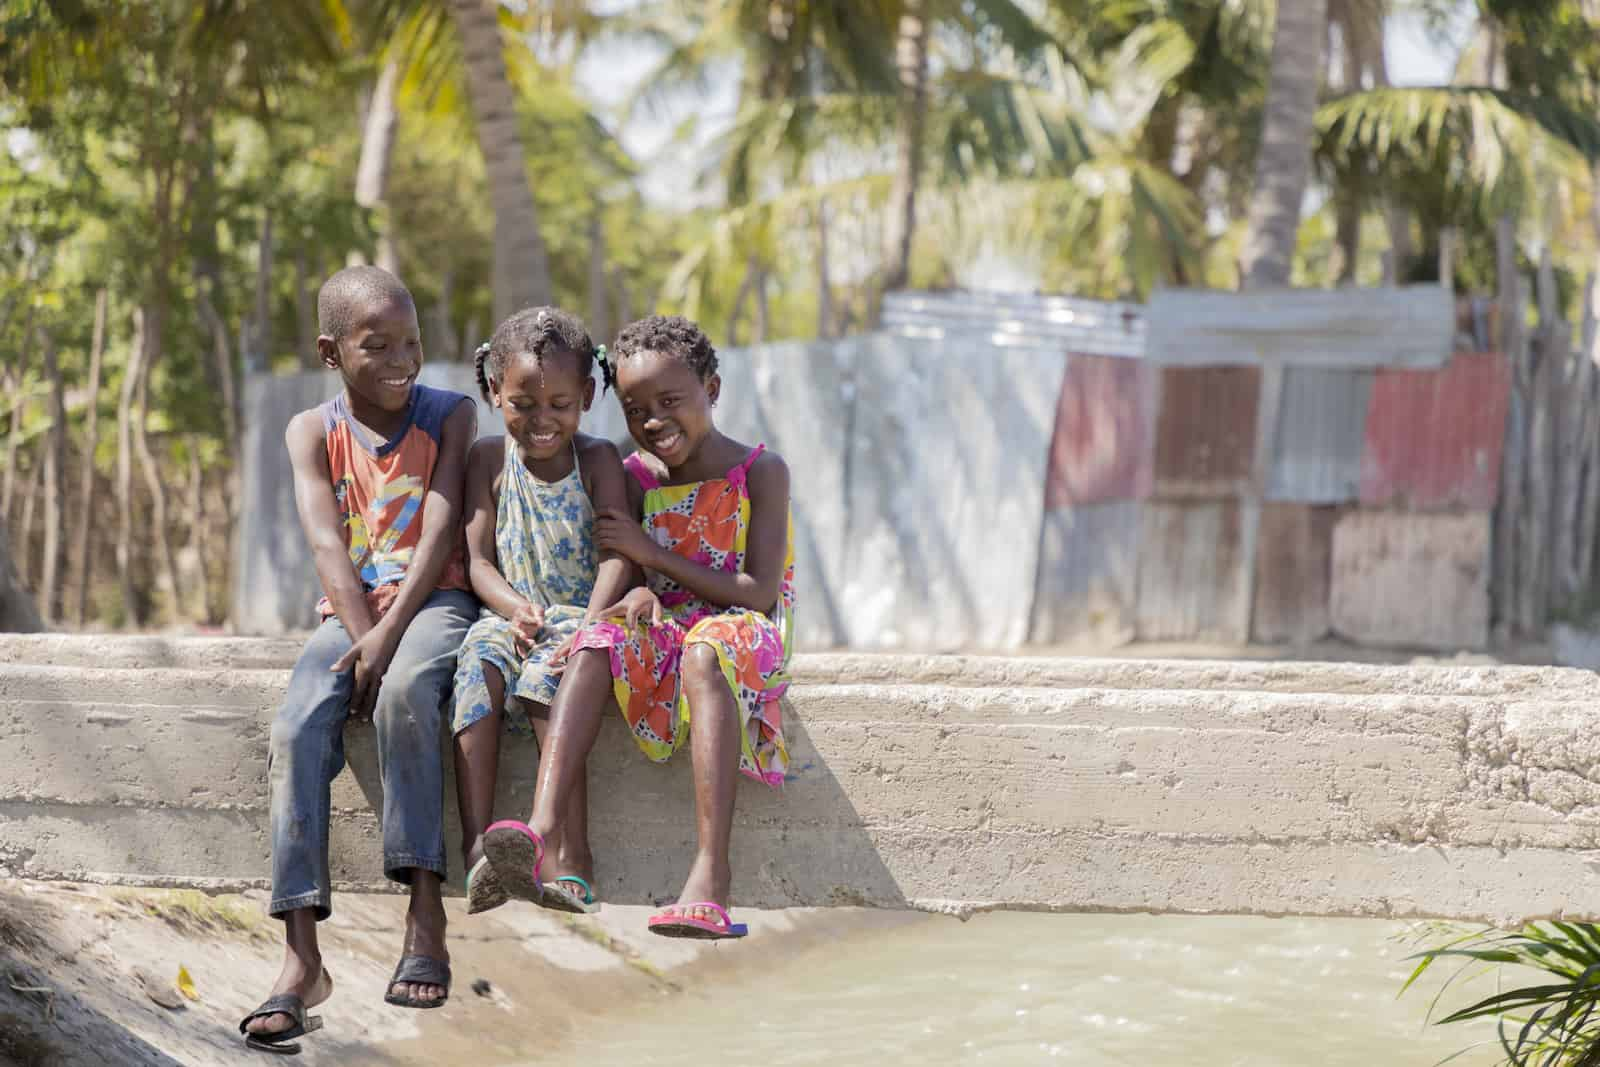 Three young children sit on a concrete beam that is a bridge across a ditch full of water. In the background are palm trees and corrugated metal sheet homes.